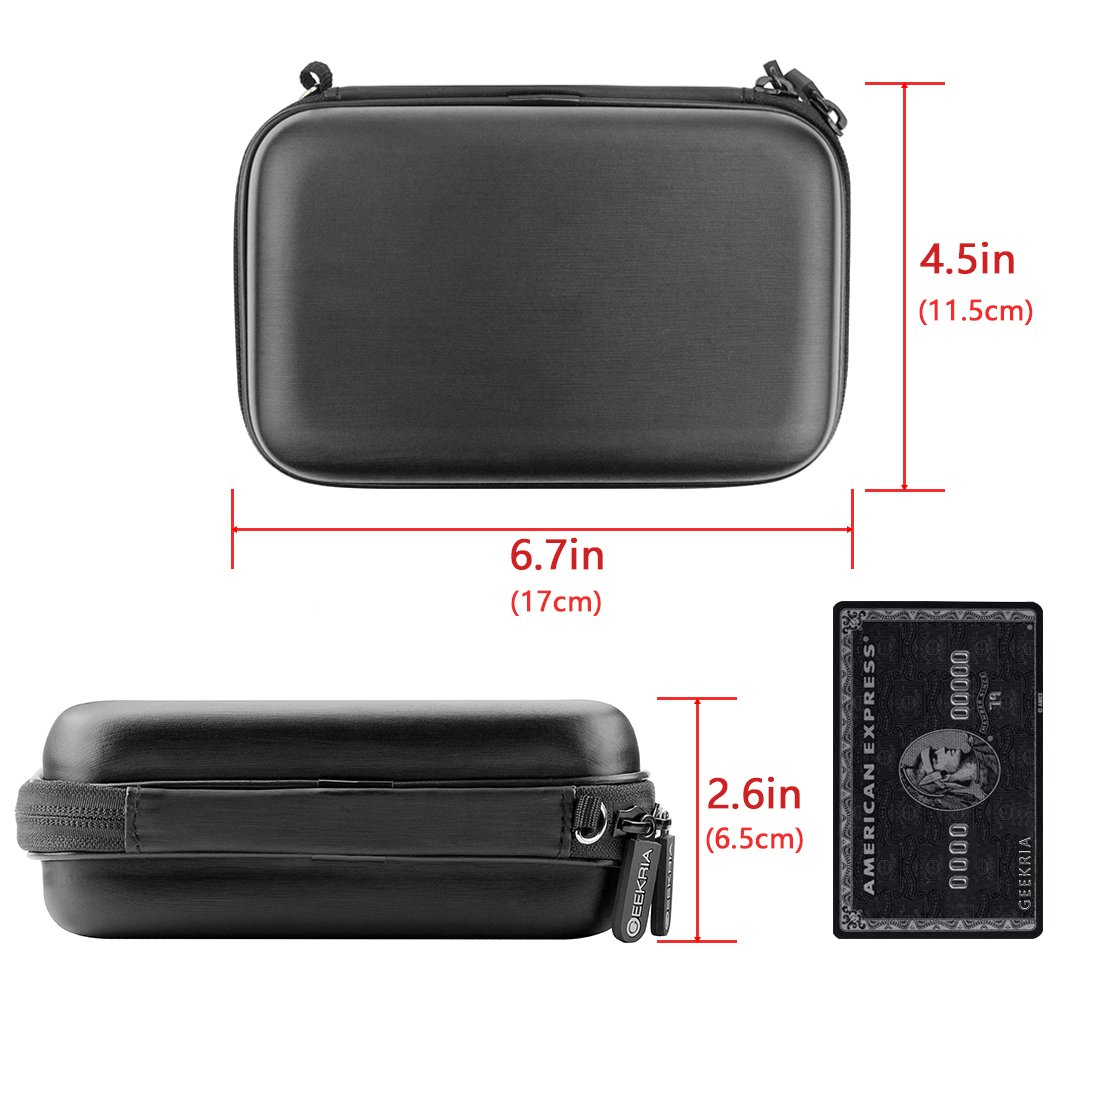 Garmin dezl Changer GO XXL XL Keys Nuvi Geekria Hard Shell GPS Case for Garmin Drive LMT SMPJ32-01 Tomtom Via Black GPS Navigator Protective Travel Bag with Space for Cable Start